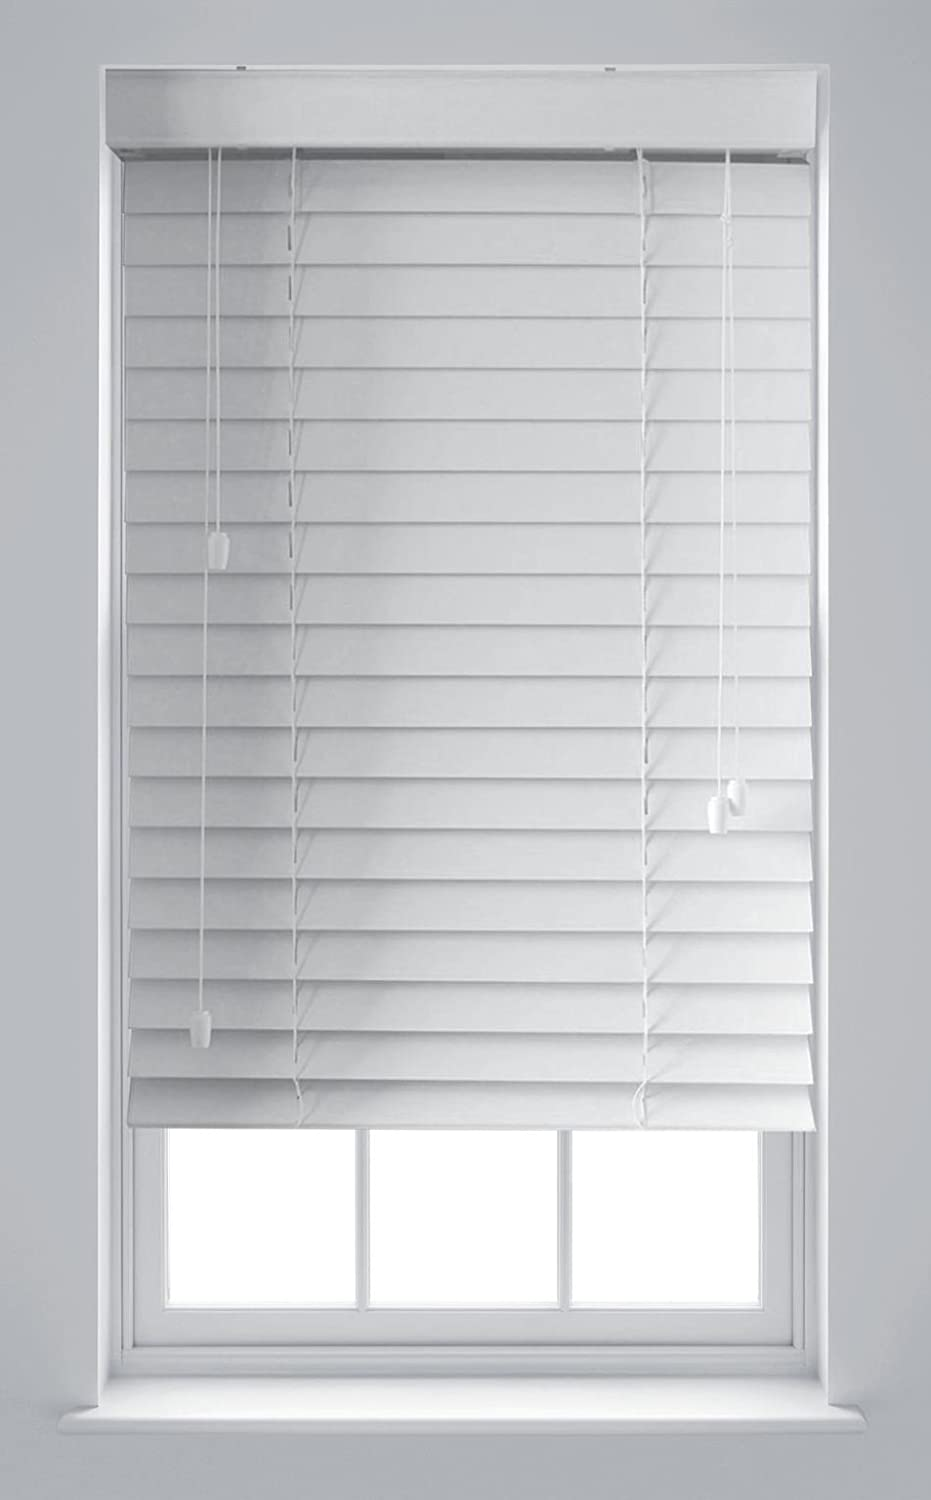 Furnished Luxury White Wood Effect Venetian Blinds Made to Measure Up To 45cm x 150cm